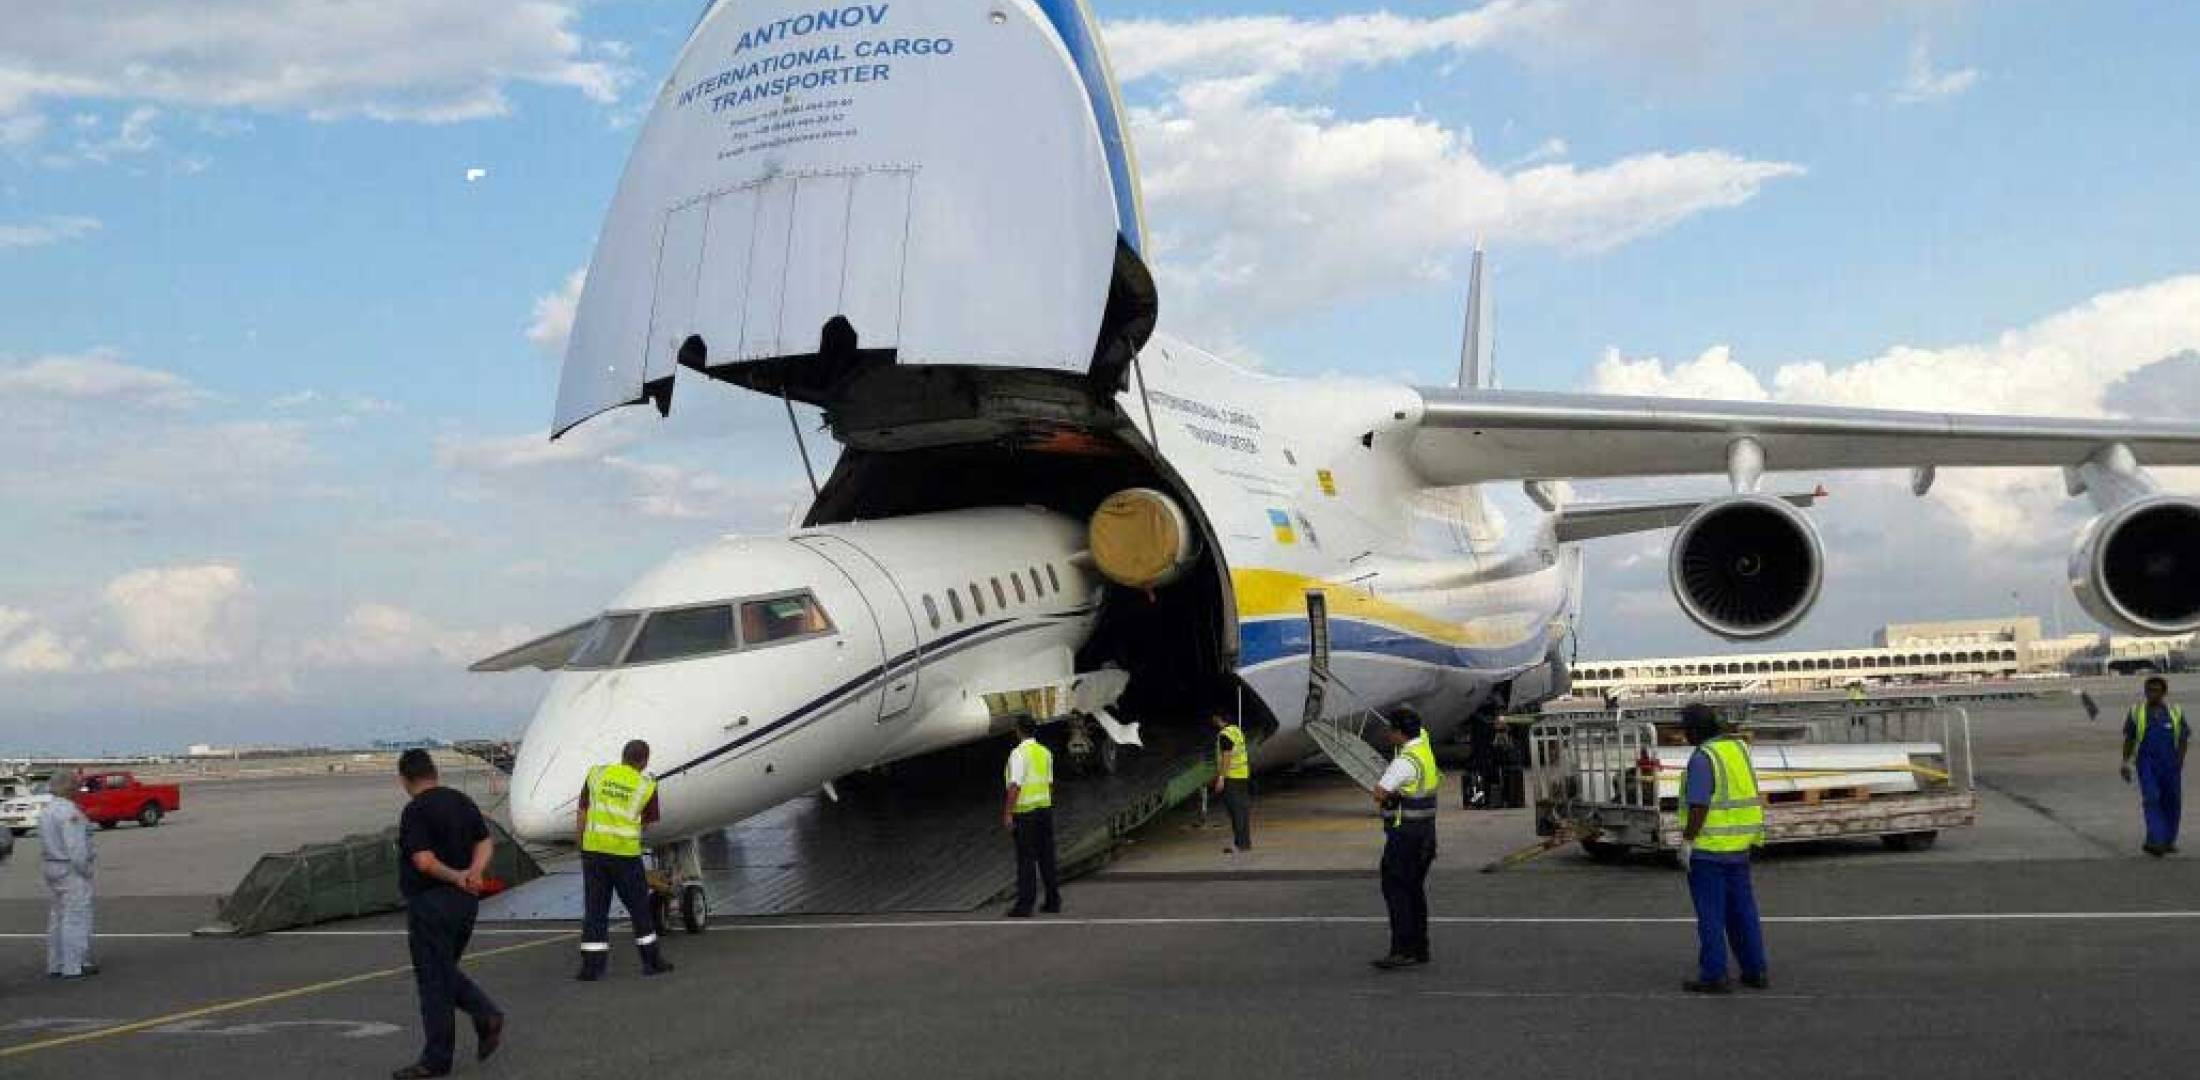 Challenger 604 being loaded onto Antonov 124